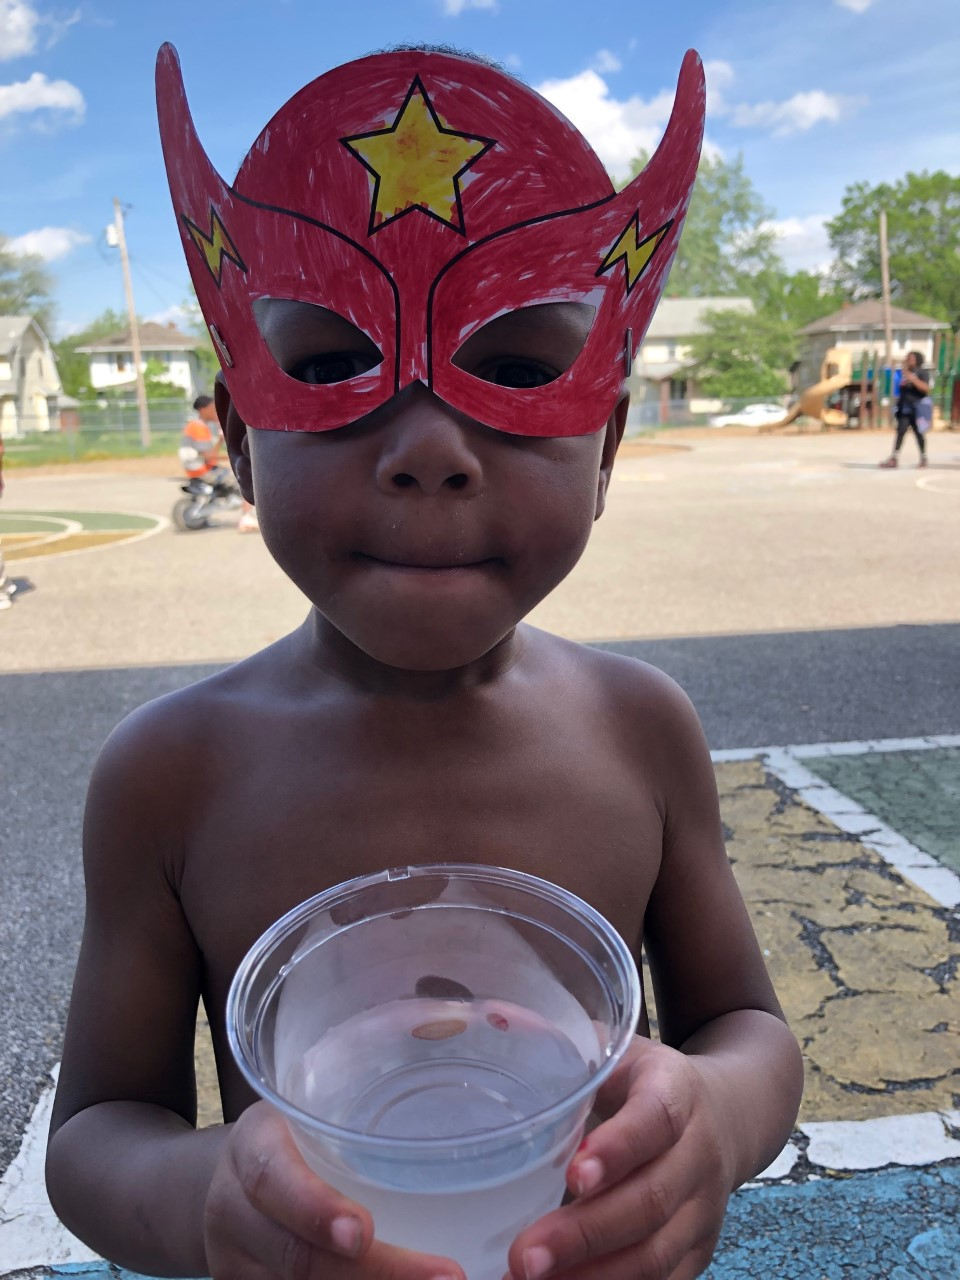 This young man created his very own superhero mask at one of four pre-VBS carnivals held at local elementary schools in Akron.  Superhero City: Unleashing Your Amazing!  taught children about their unique design as God's workmanship, and the ways He works in each of us to spread His love and hope!